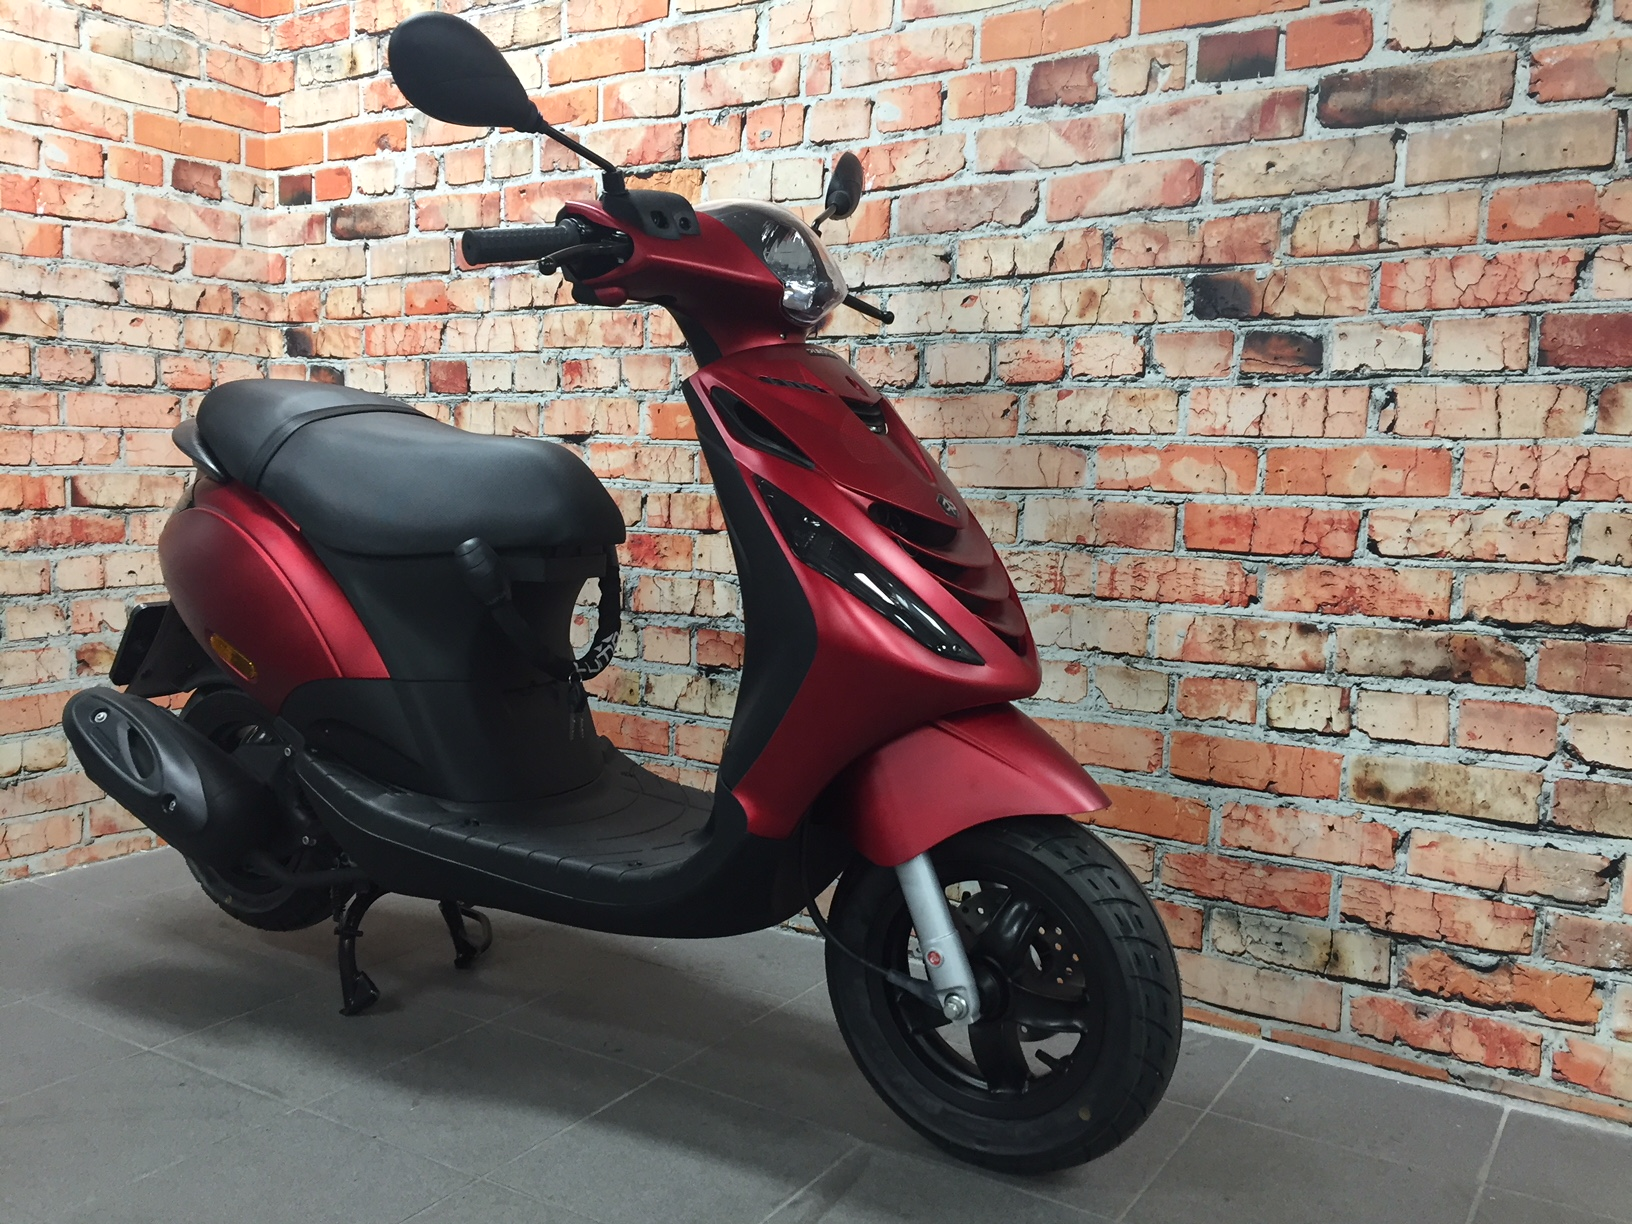 scooter piaggio zip 25 km u 4t custom mat rood de jager scooters. Black Bedroom Furniture Sets. Home Design Ideas